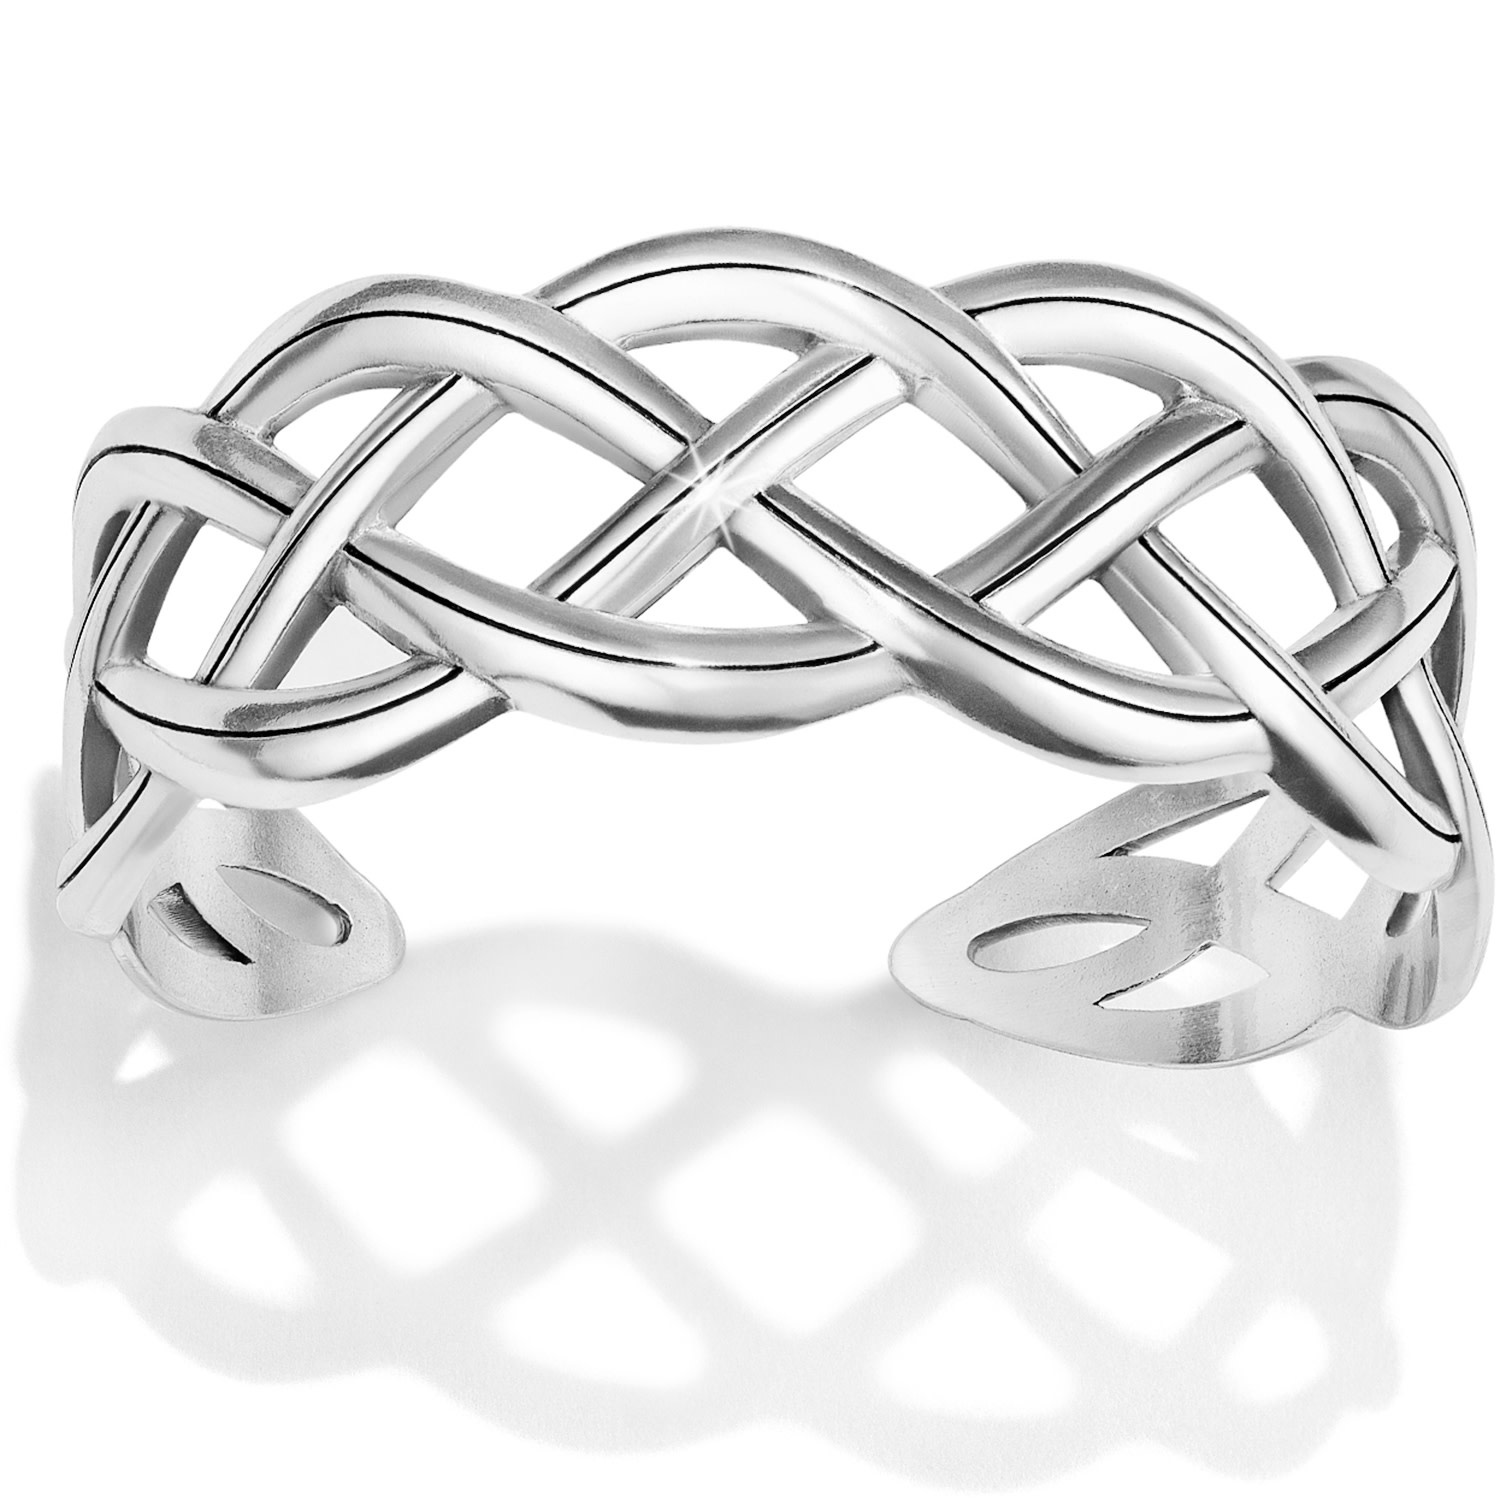 BRIGHTON INTERLOK BRAID CUFF BRACELET